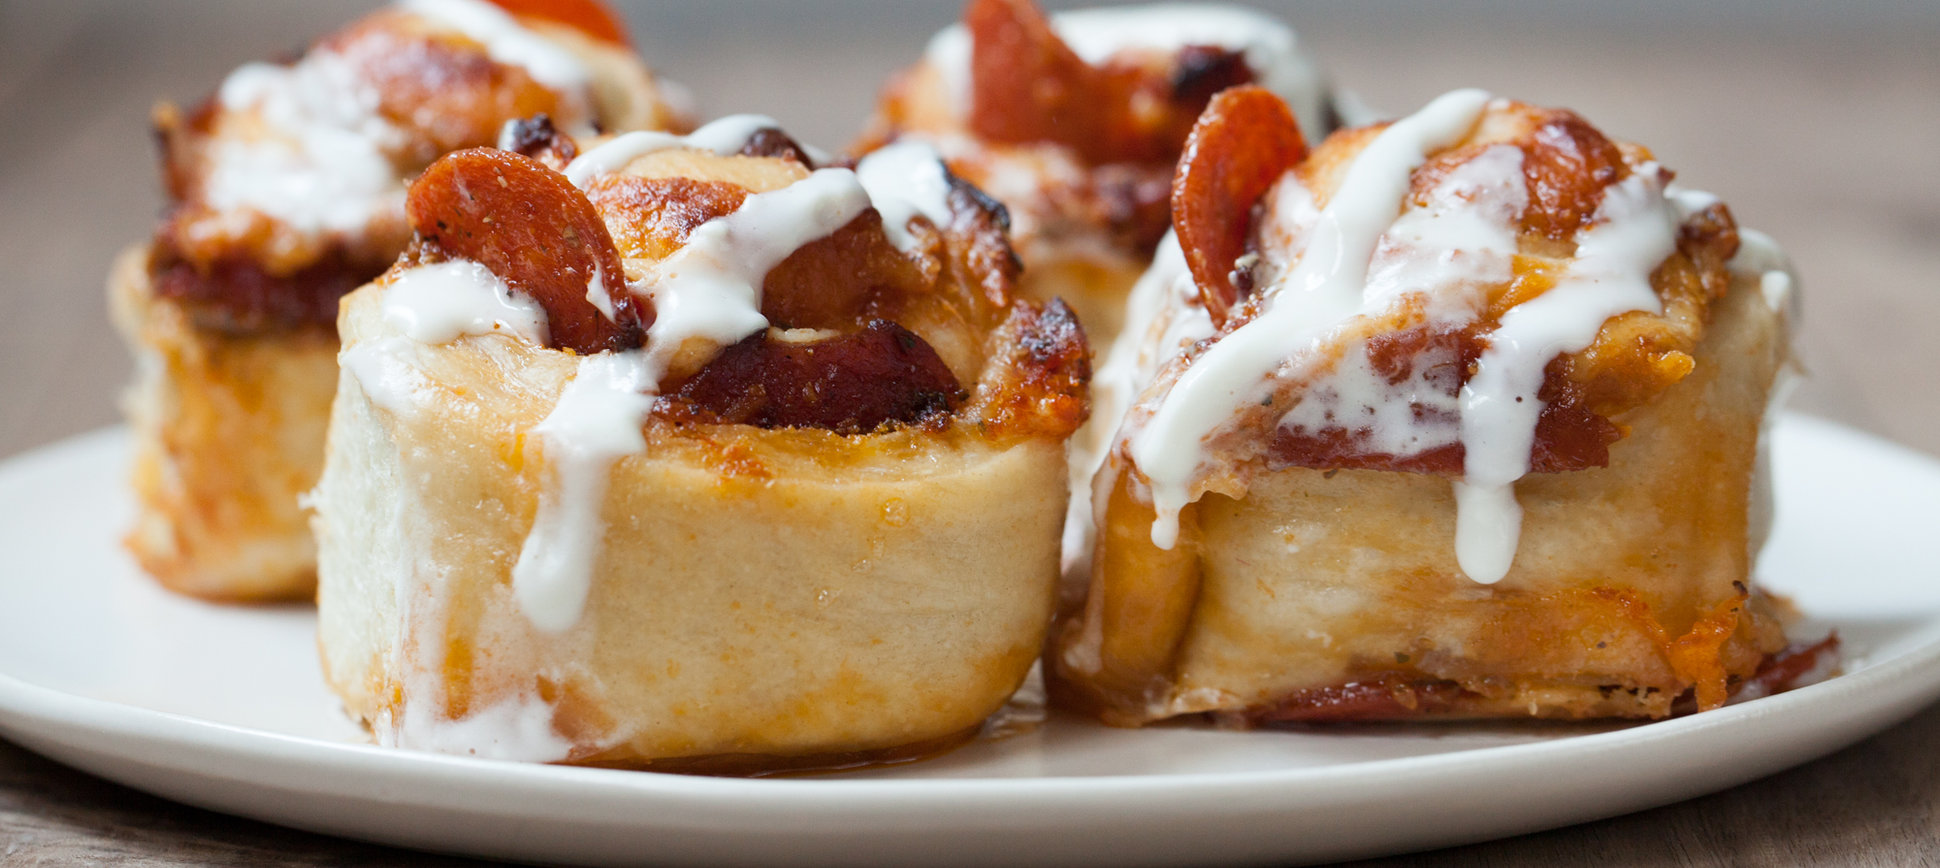 ... cinnamon roll pizza pizza buns cinnamon pizza buns pizza buns pizza